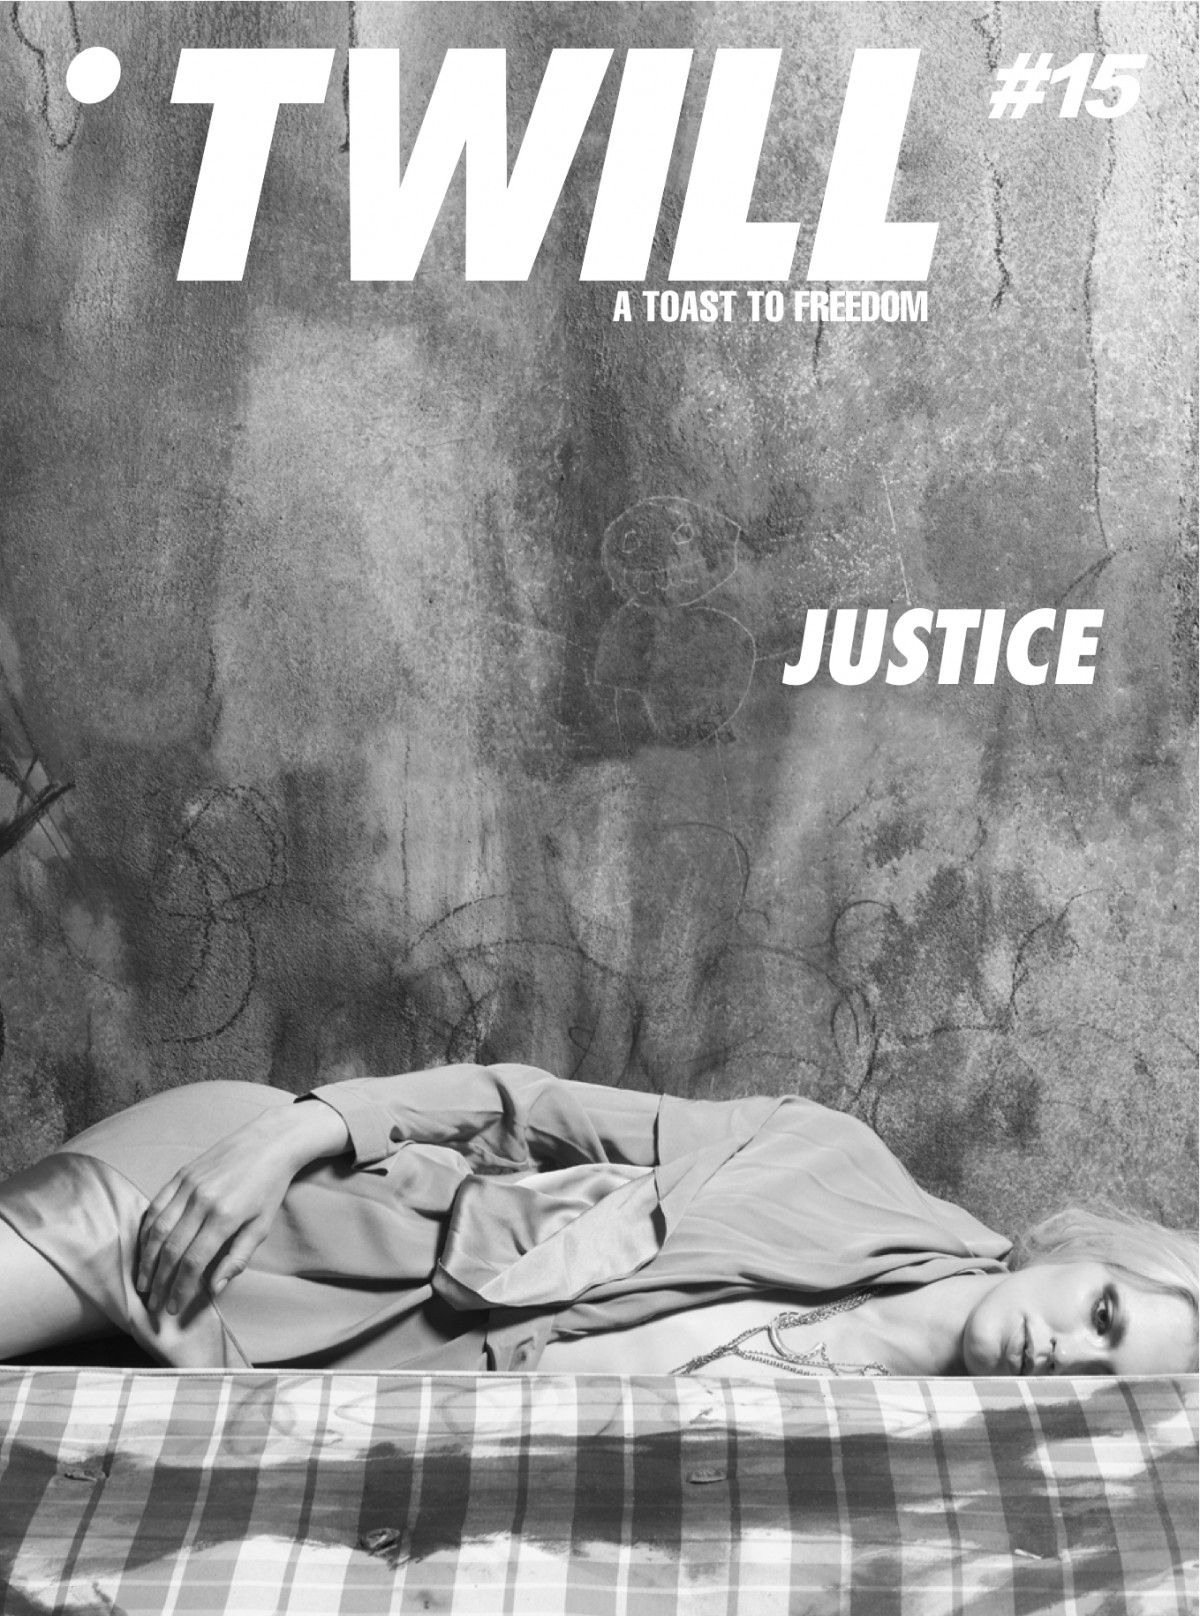 Twill #15 by Perry Curties, Justice